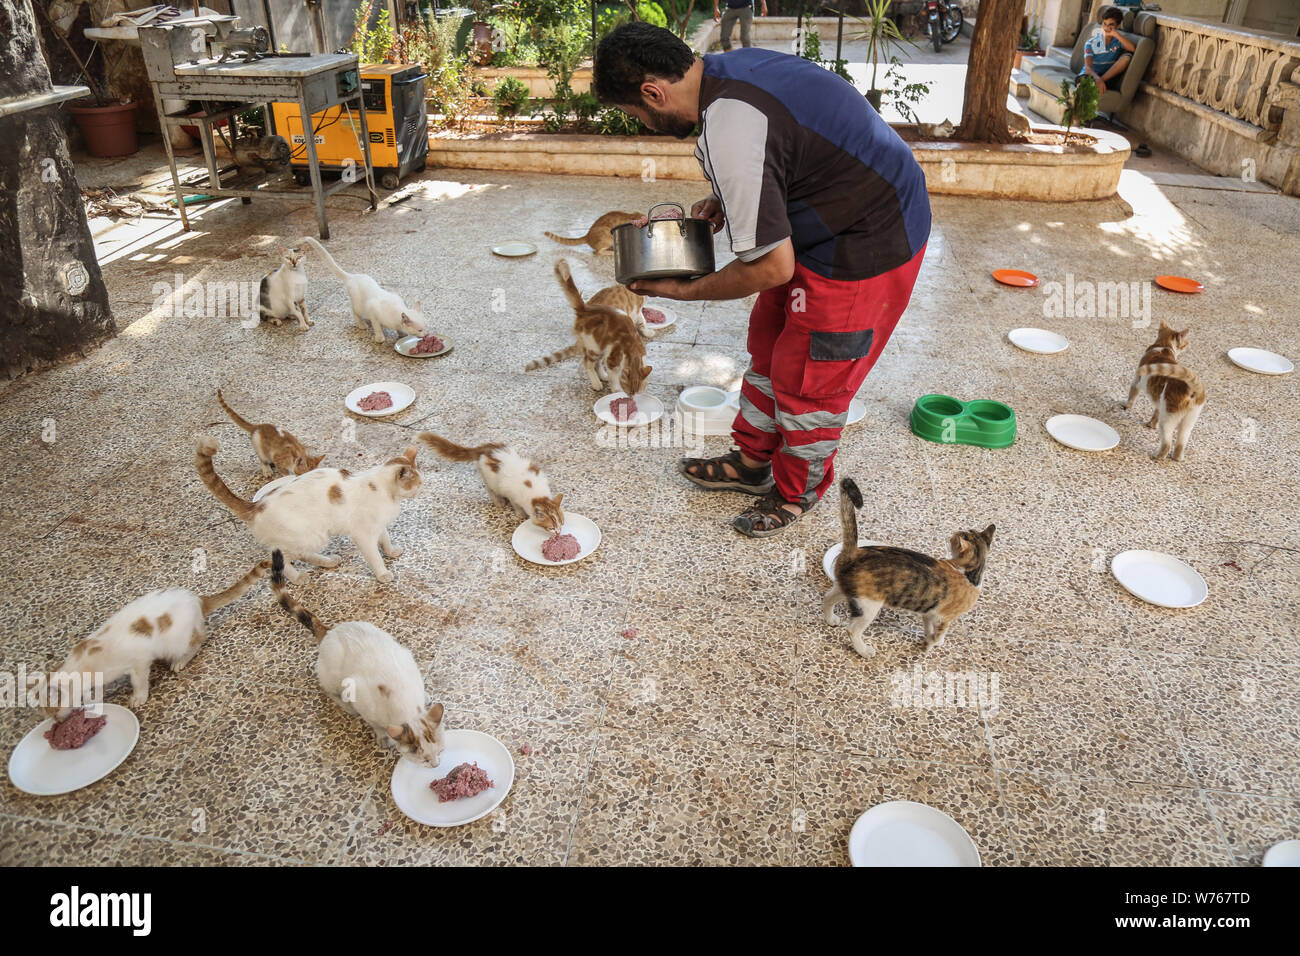 03 August 2019, Syria, Aleppo: Mohammed Alaa al-Jaleel, also known as 'the cat man of Aleppo' feeds cats at the Ernesto's Cat Sanctuary that he runs in Kafr Naya. During the Syrian war in 2012, Al-Jaleel was working as an ambulance driver in Aleppo, he used to drop off food for stray and abandoned cats on his way home after work. In 2015, he started to search for living cats in the war devastated areas and take them home, later in the year his compassionate work with cats gone viral and with the help of an Italian cat lover called Alessandra Abidin, he started to raise funds and receive donati Stock Photo